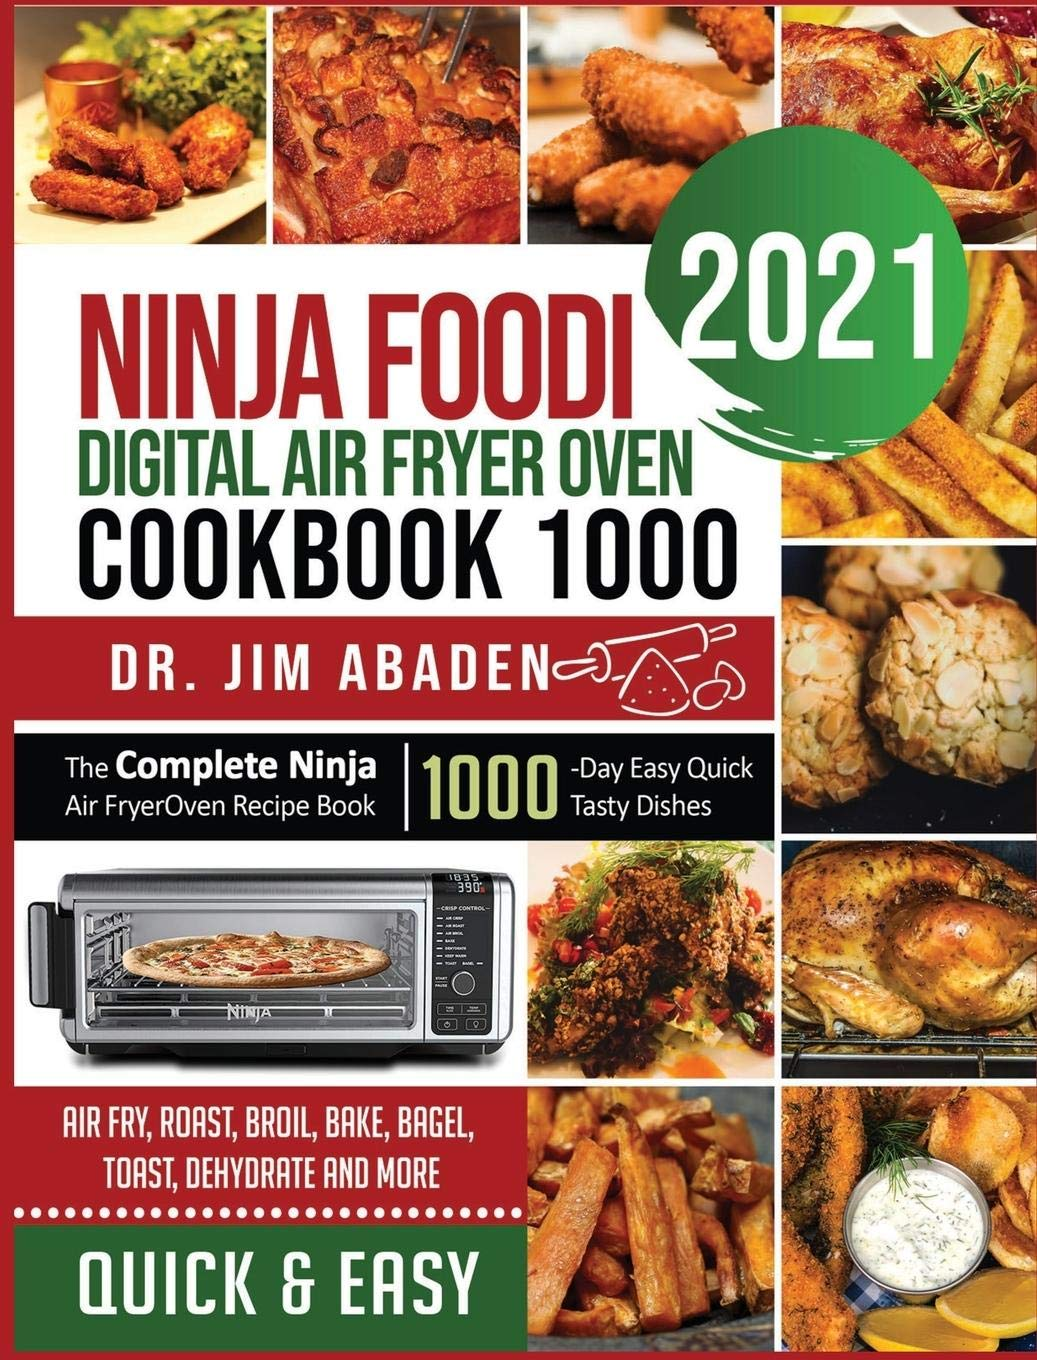 Ninja Foodi Digital Air Fryer Oven Cookbook 1000: The Complete Ninja Air Fryer Oven Recipe Book-1000-Day Easy Quick Tasty Dishes- Air Fry, Roast, Broil, Bake, Bagel, Toast, Dehydrate and More